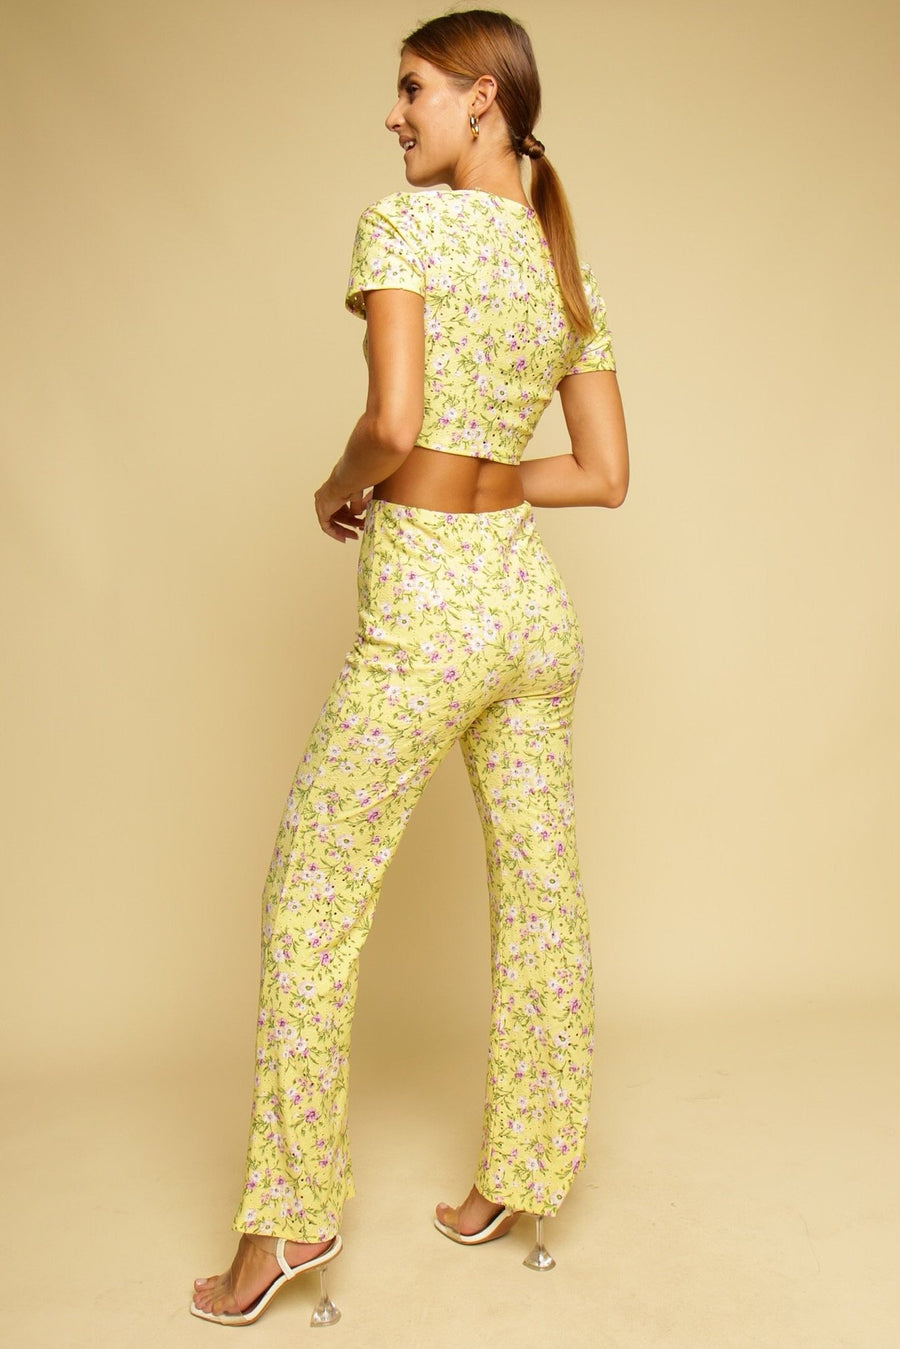 Amalfi Coast Floral Top & Pant Co-ord Set Lemon